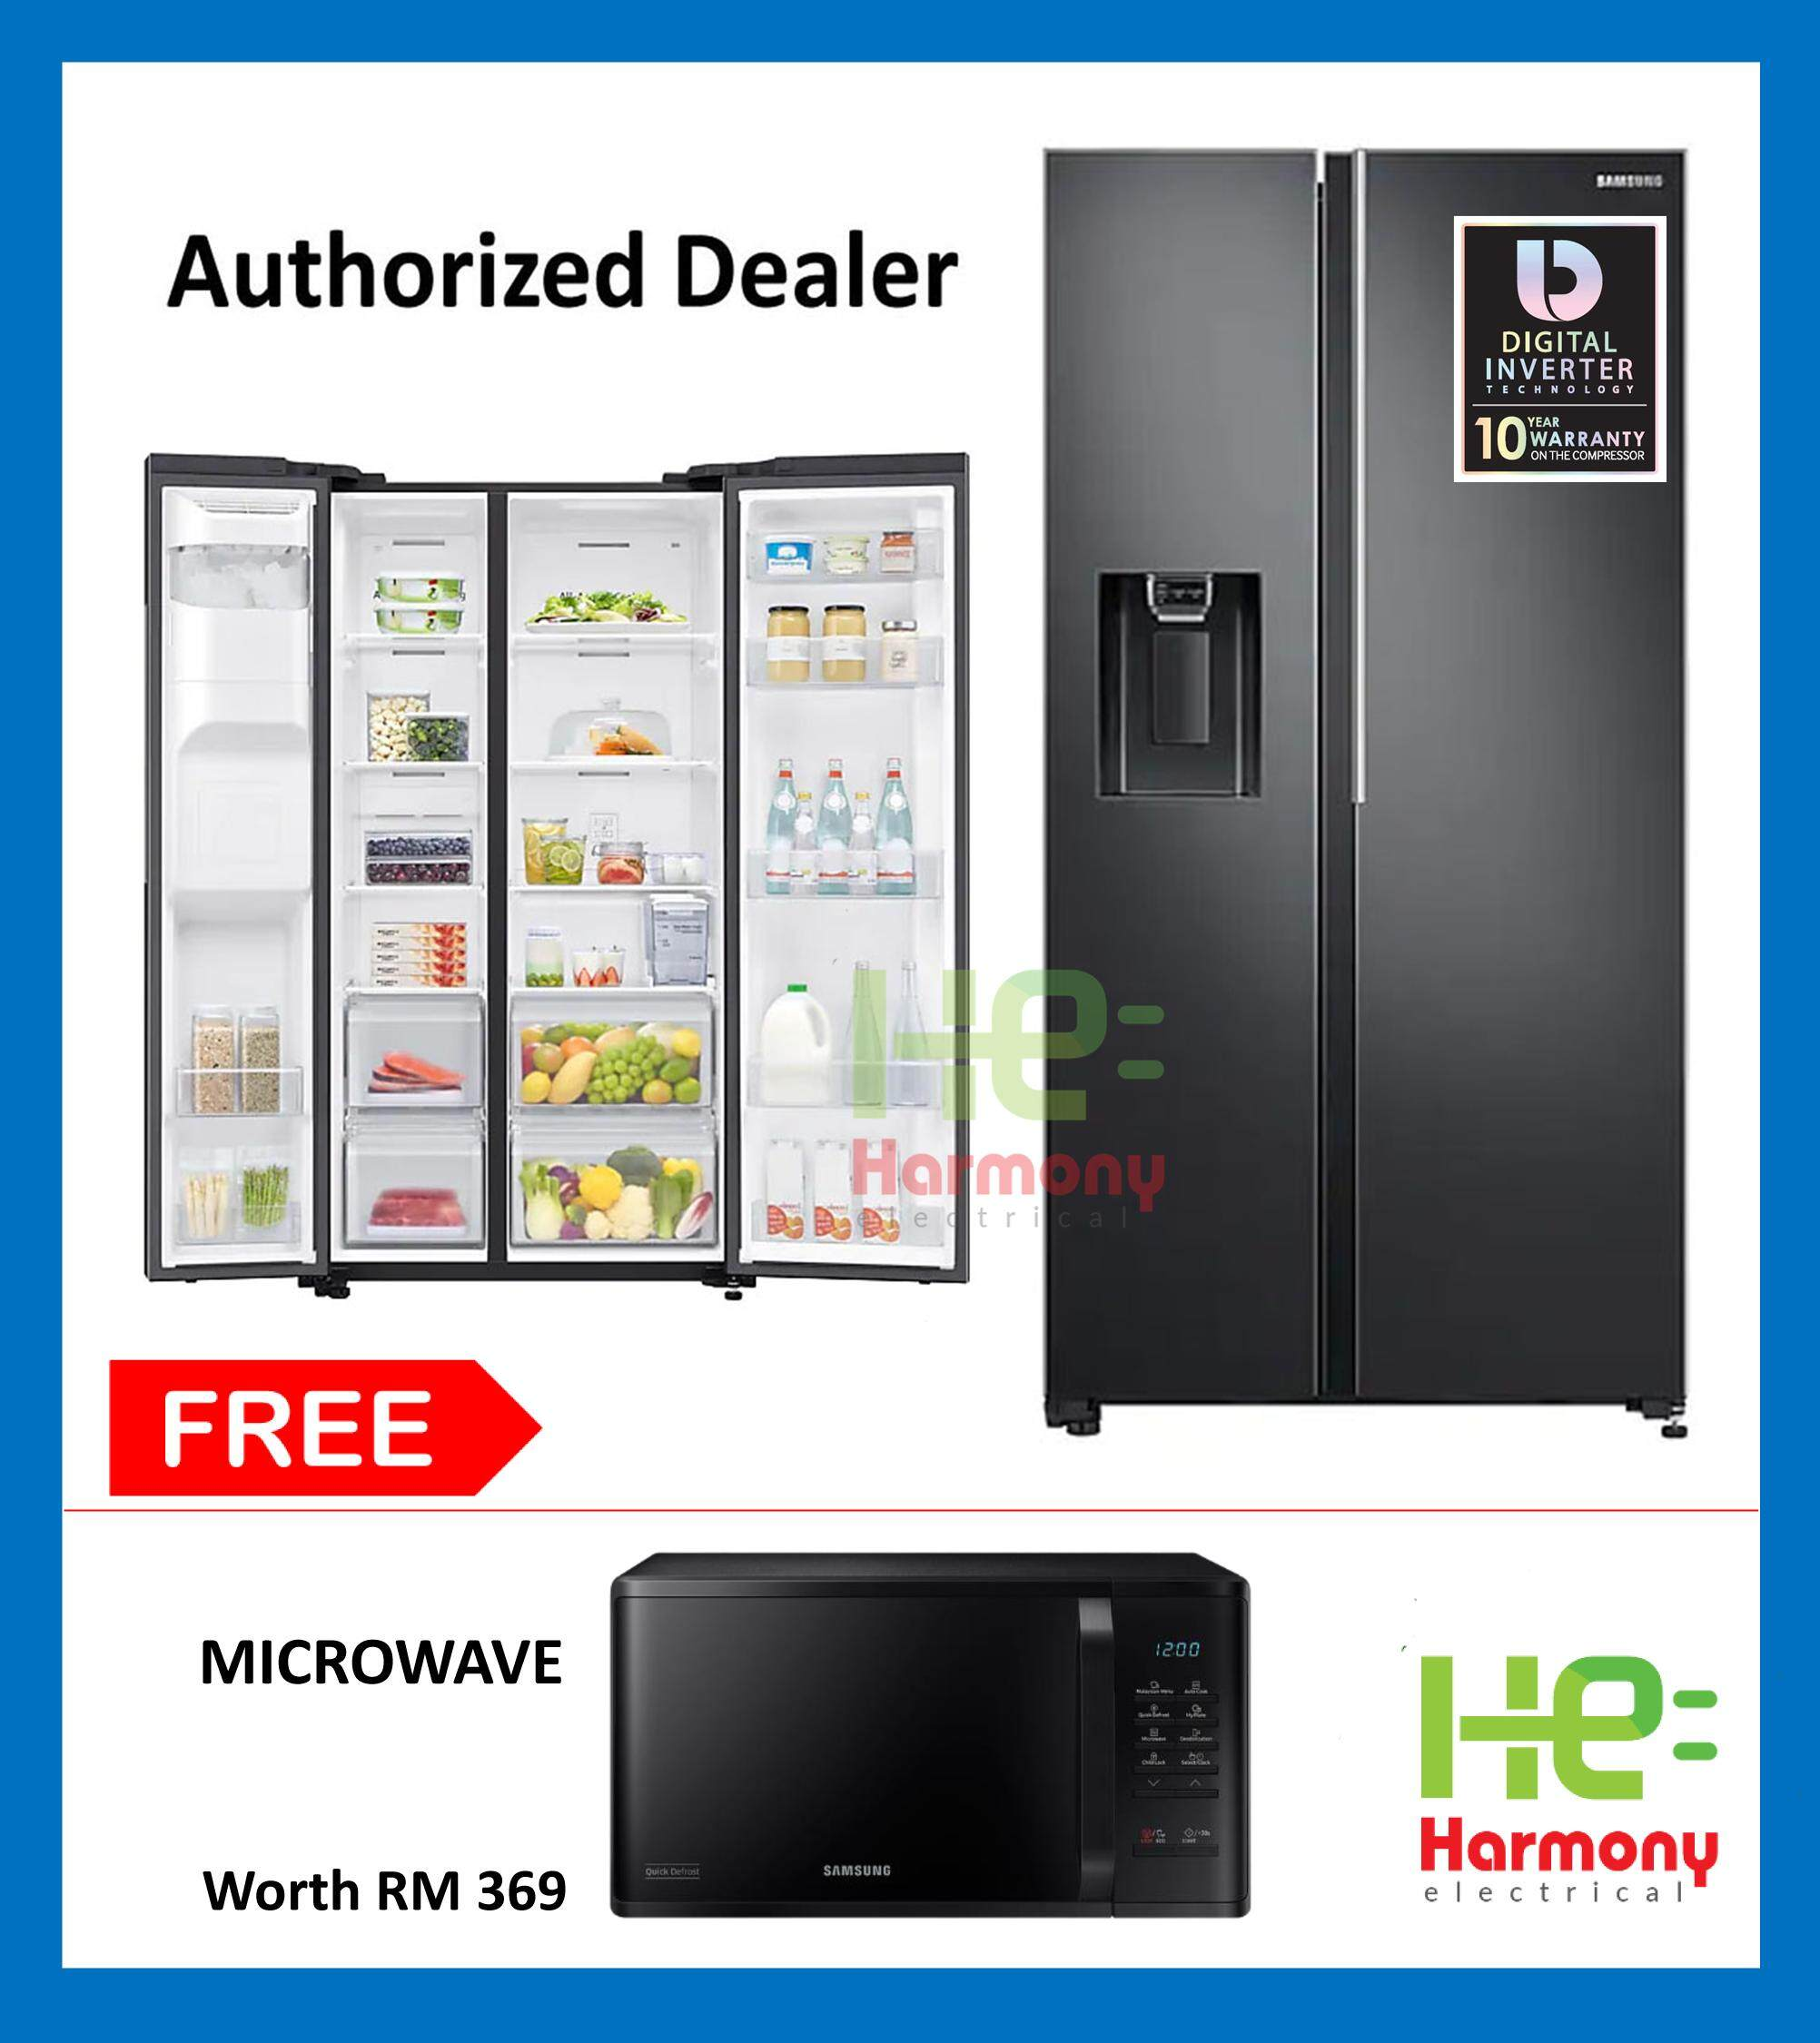 Samsung 660L Side by Side Fridge with Large Capacity (SpaceMax) FlexZone RS64R5101B4/ME + Free Samsung Microwave MS23K3513AK/SM Worth RM369 ( Peti sejuk )